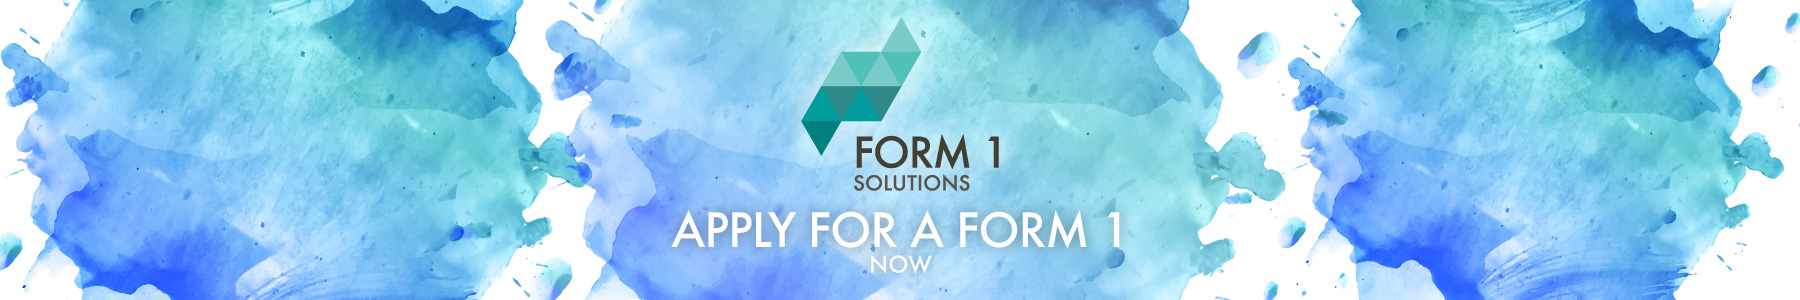 form1 slider 02 apply